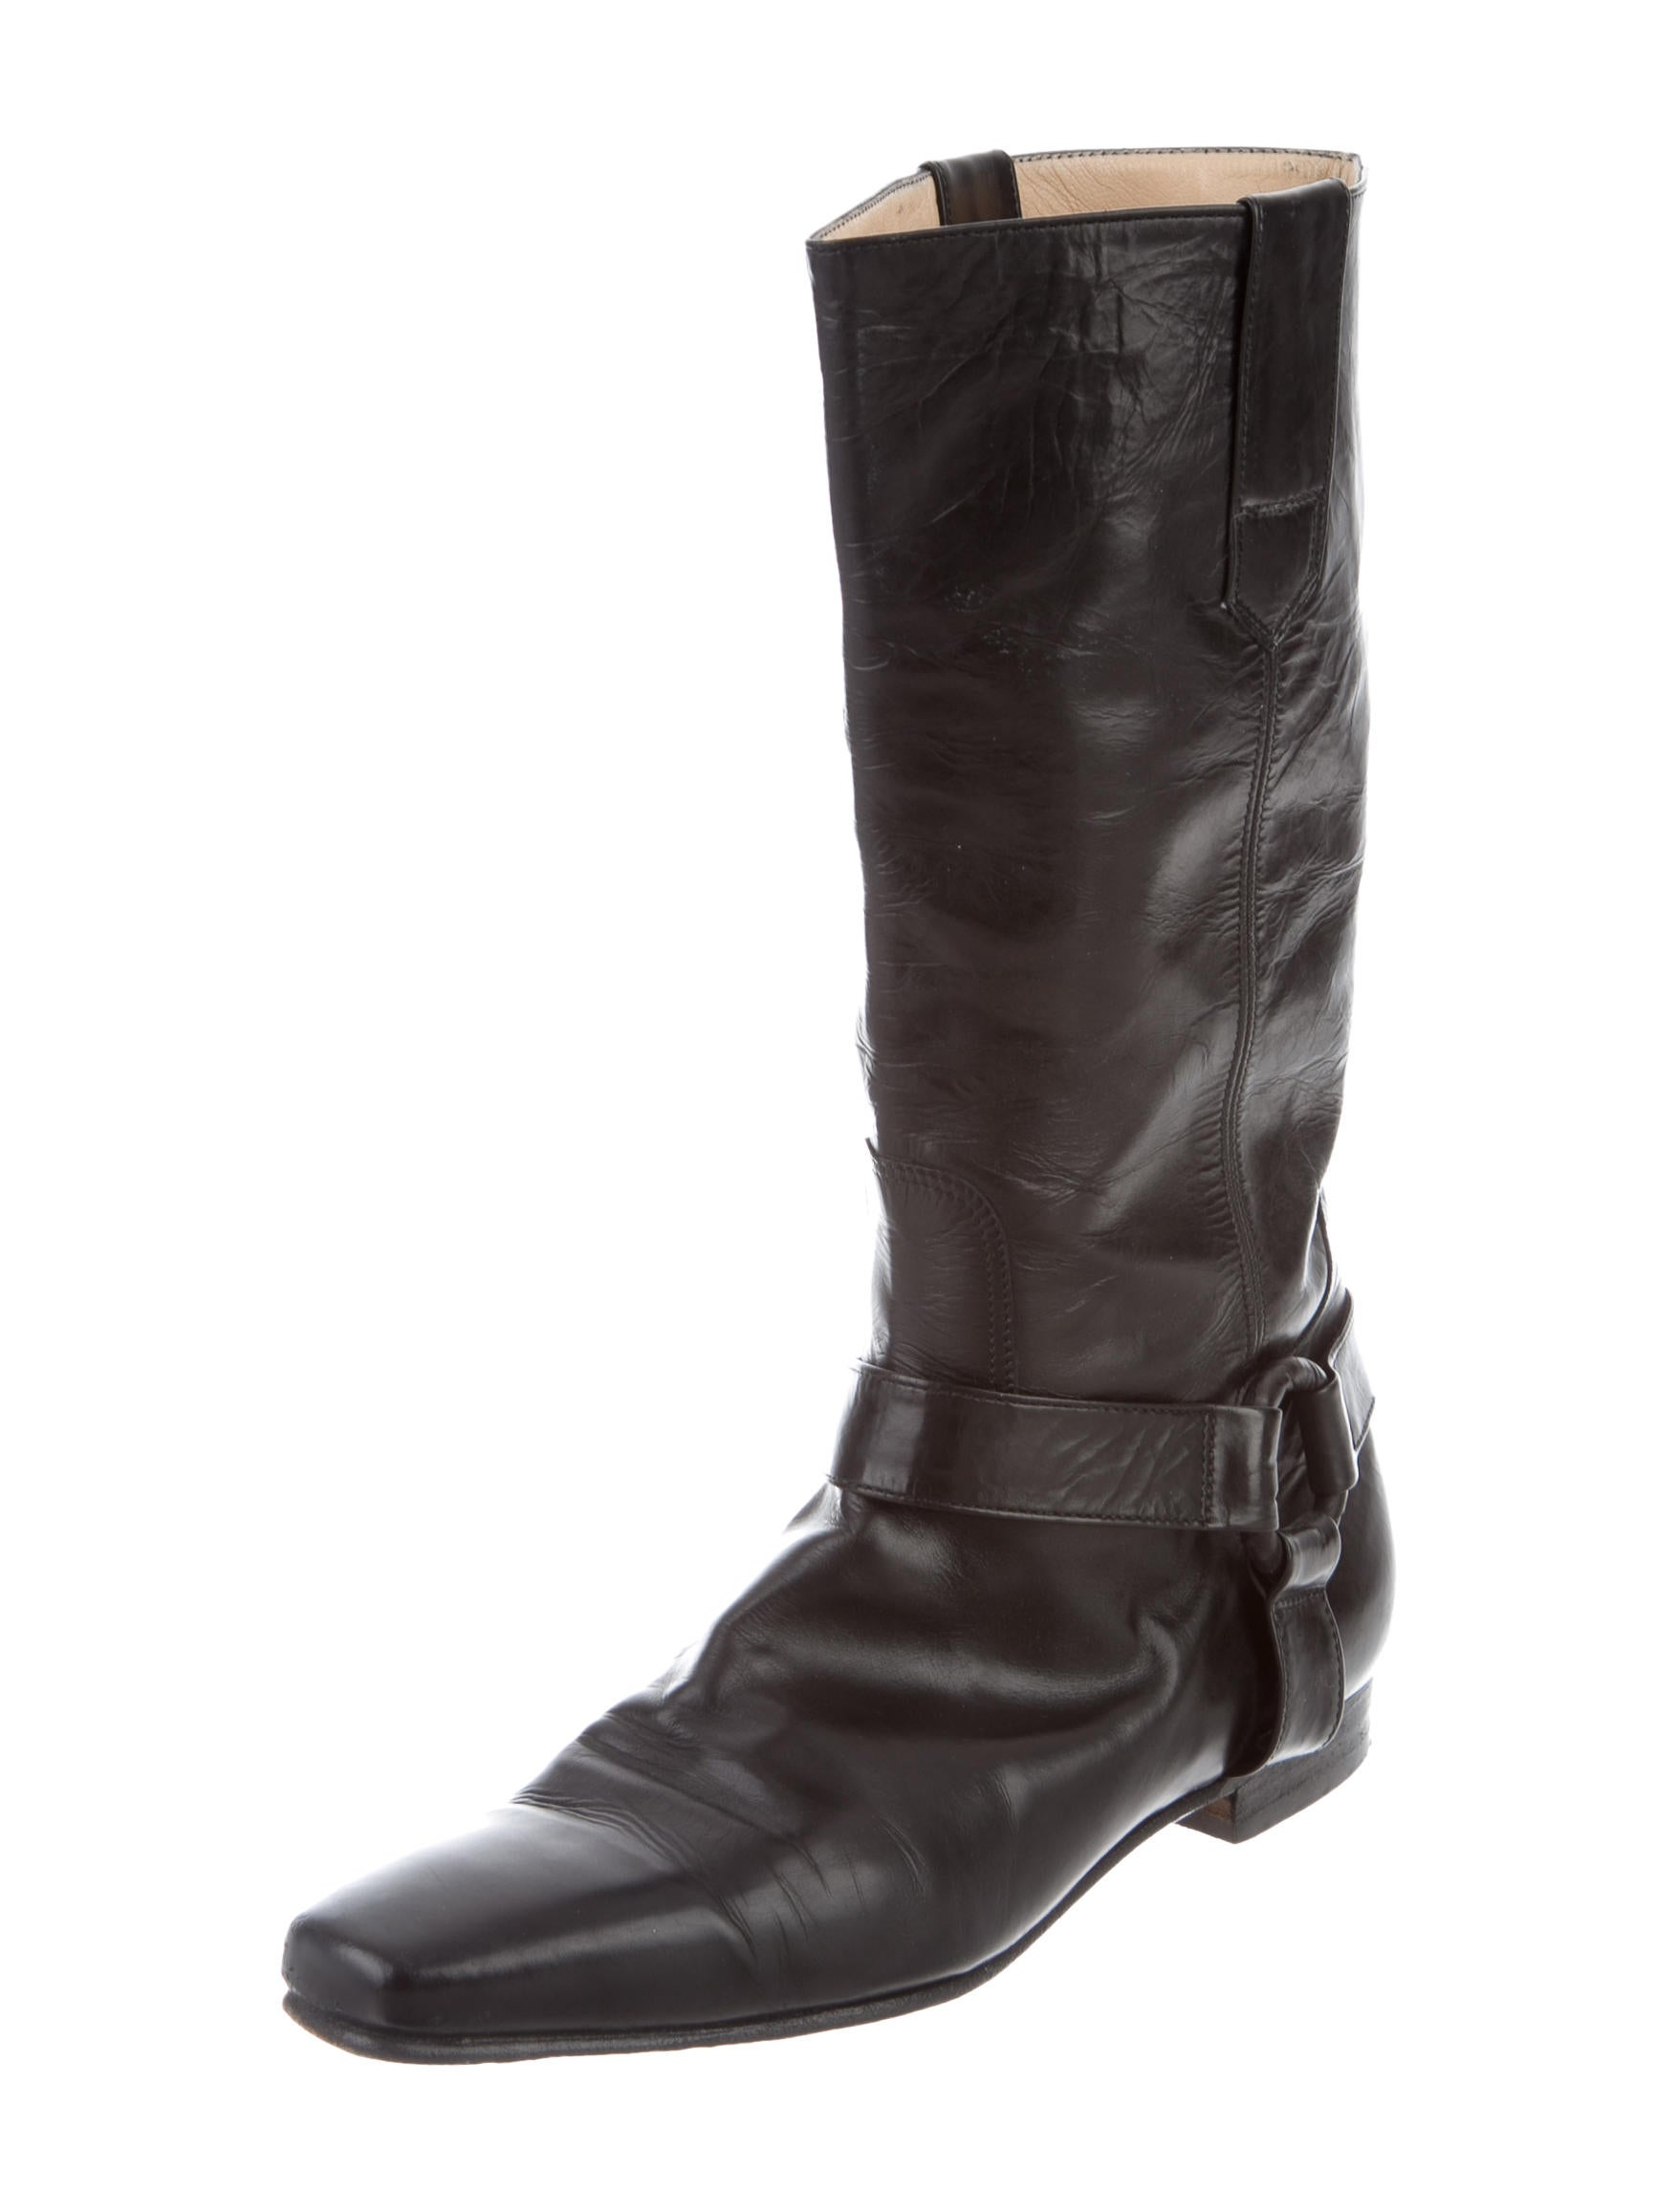 Manolo Blahnik Leather Harness Ankle Boots - Shoes ...